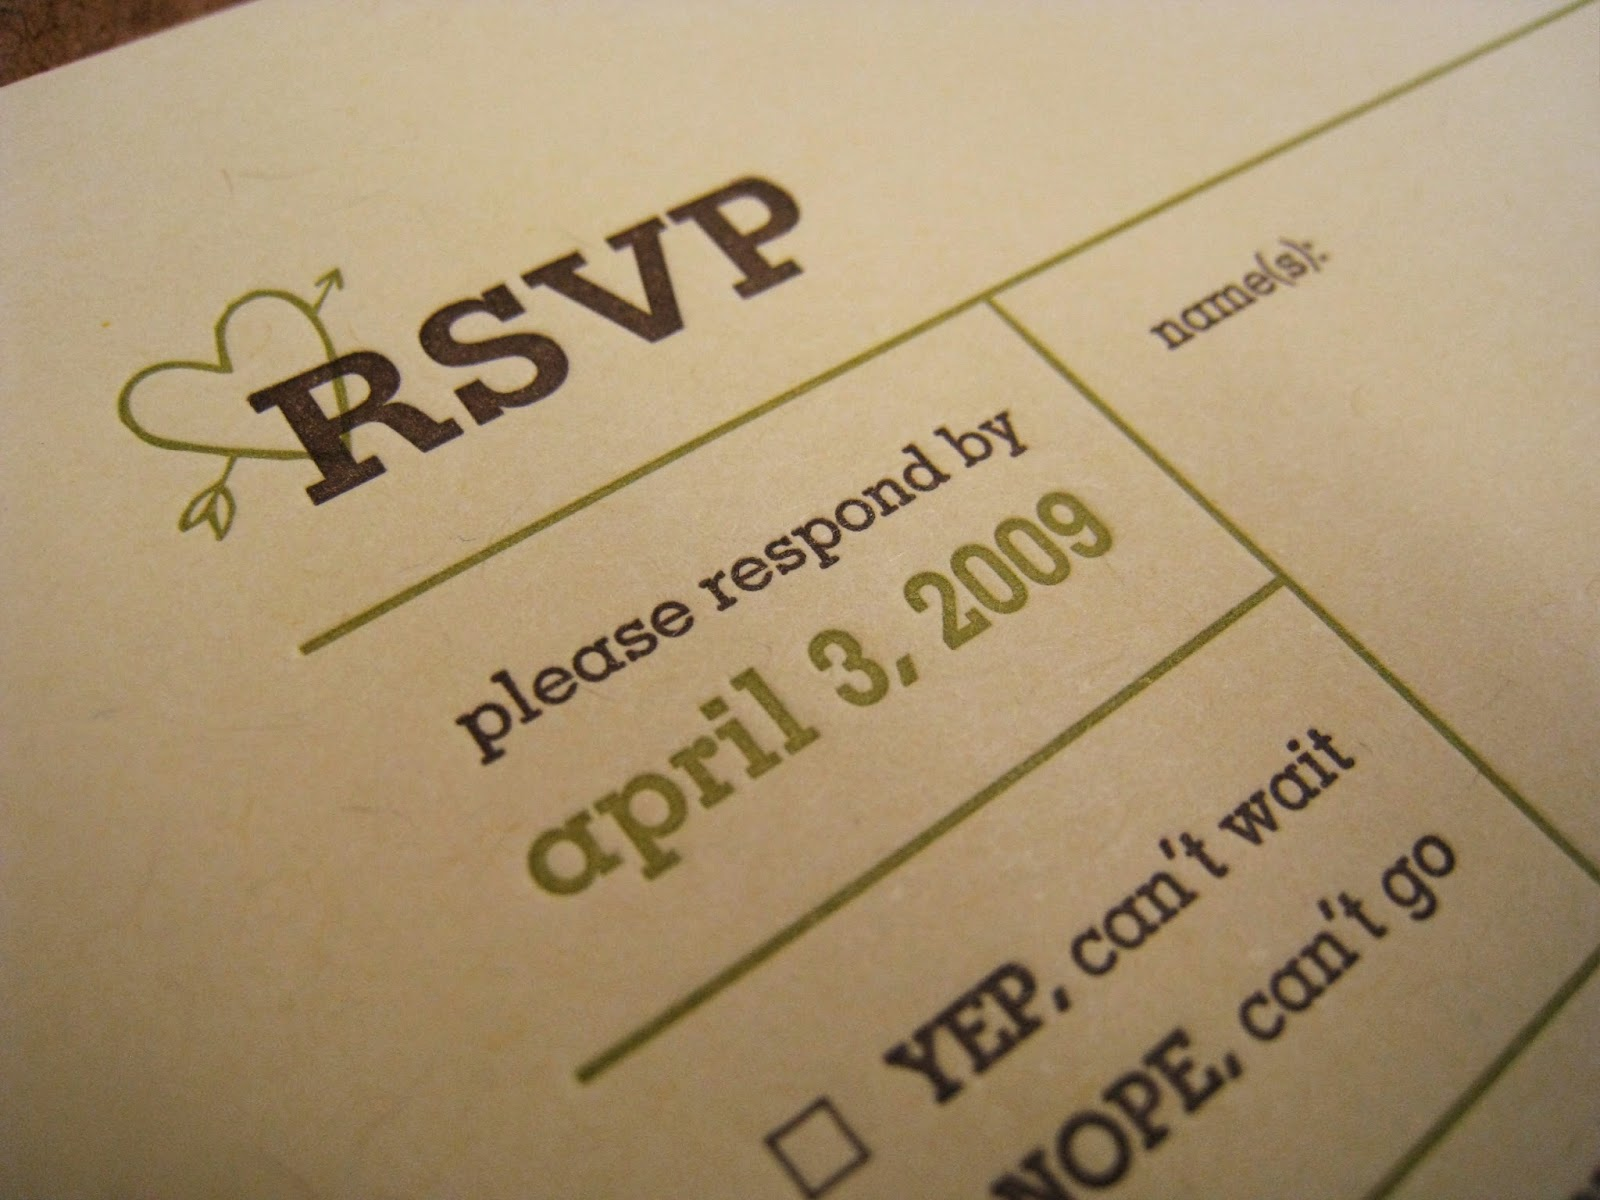 Rsvp meaning of for Rsvp stand for on an invitation